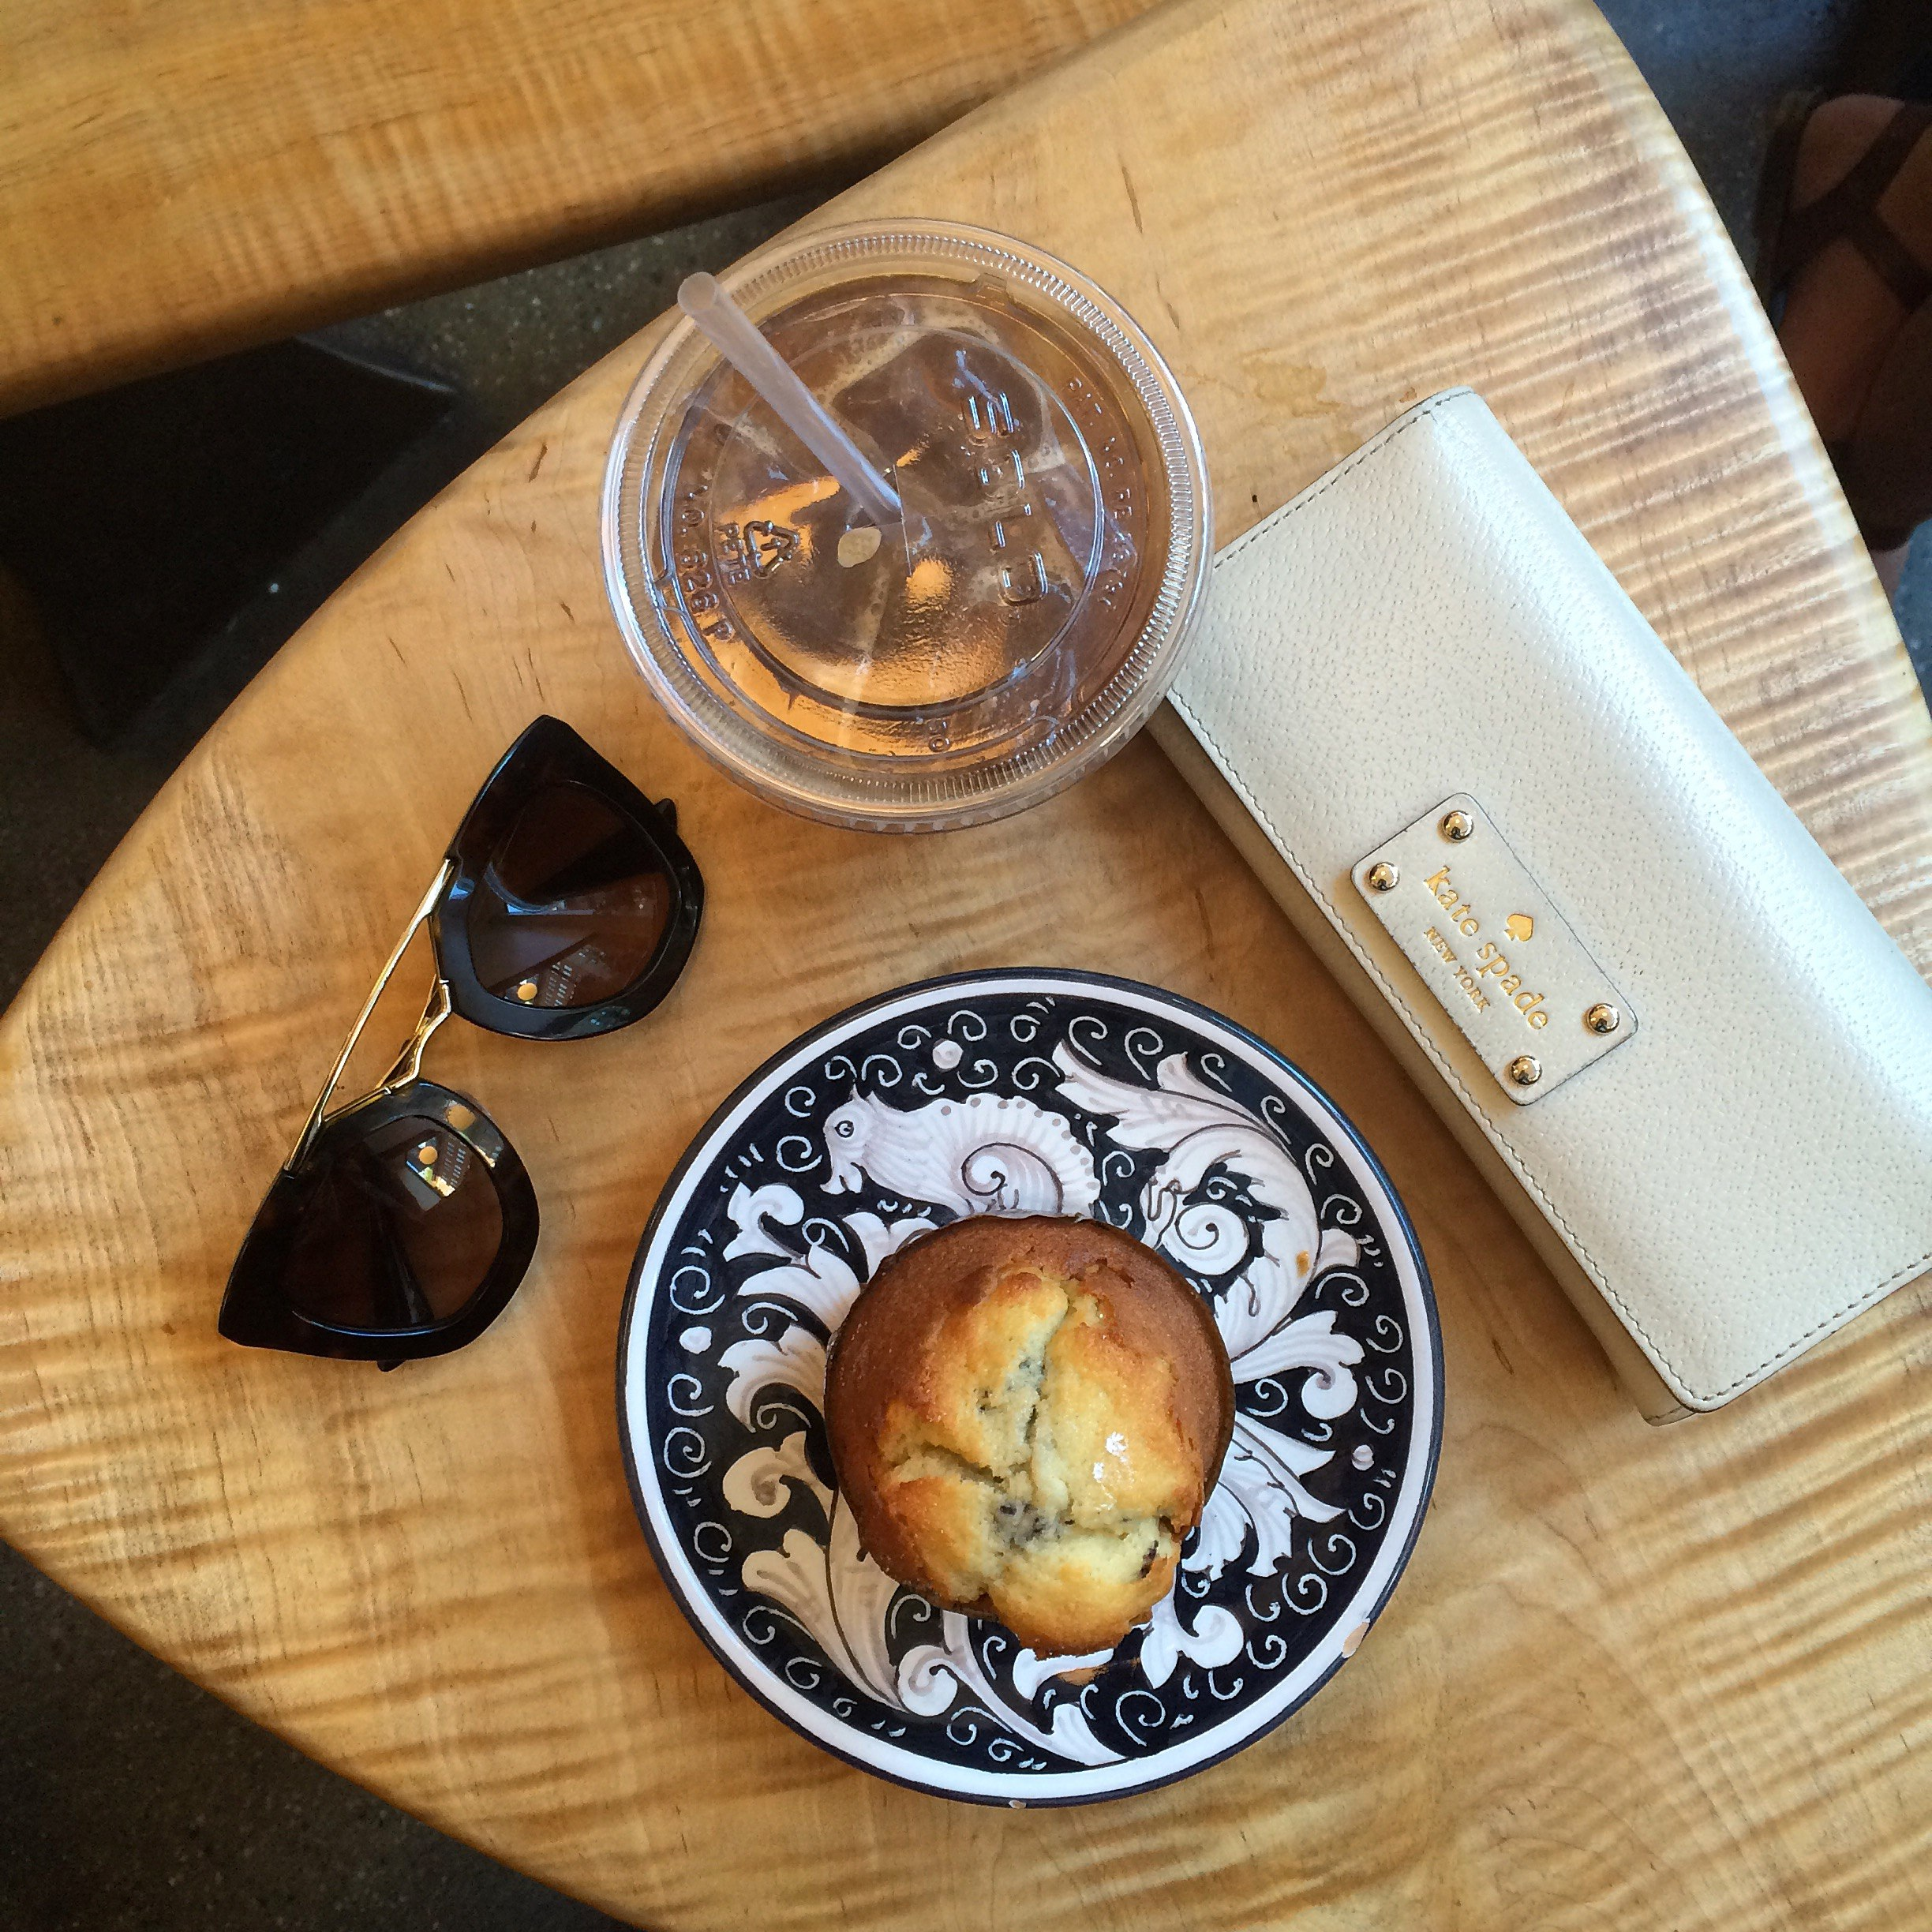 NYC Coffee Guide - La Colombe